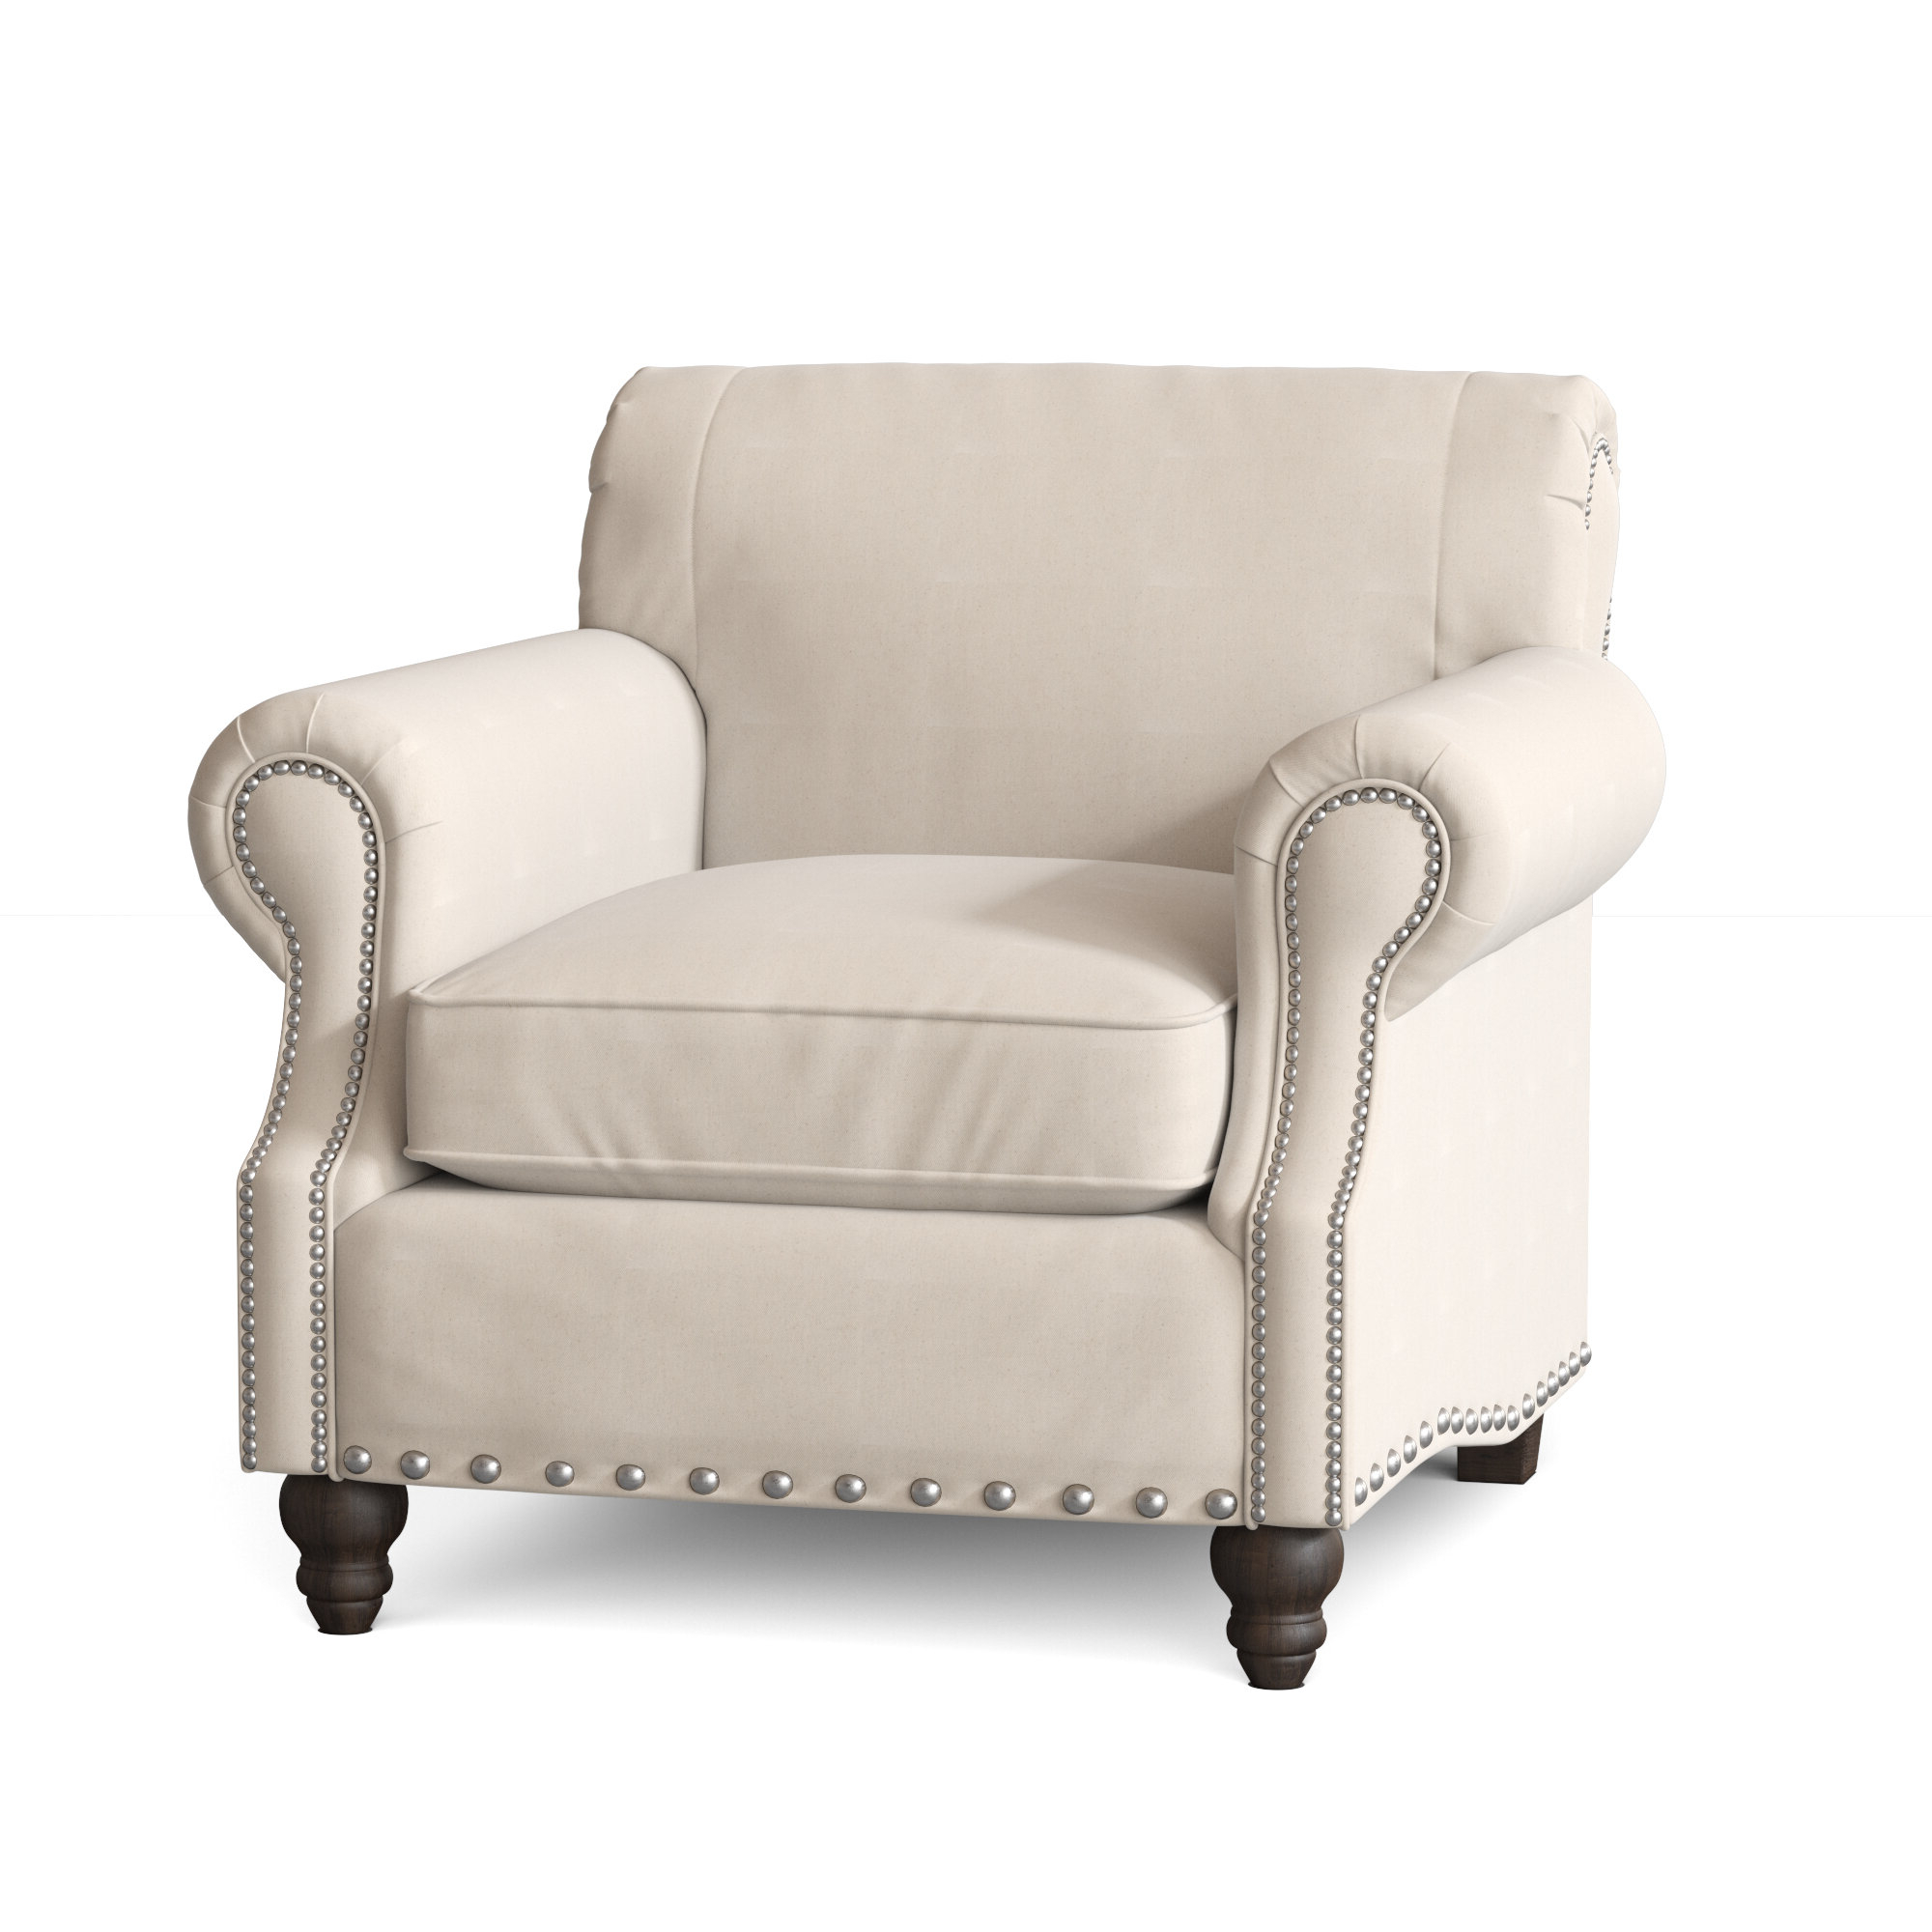 "2019 Landry 40"" W Polyester Blend Down Cushion Armchair With Polyester Blend Armchairs (View 9 of 20)"